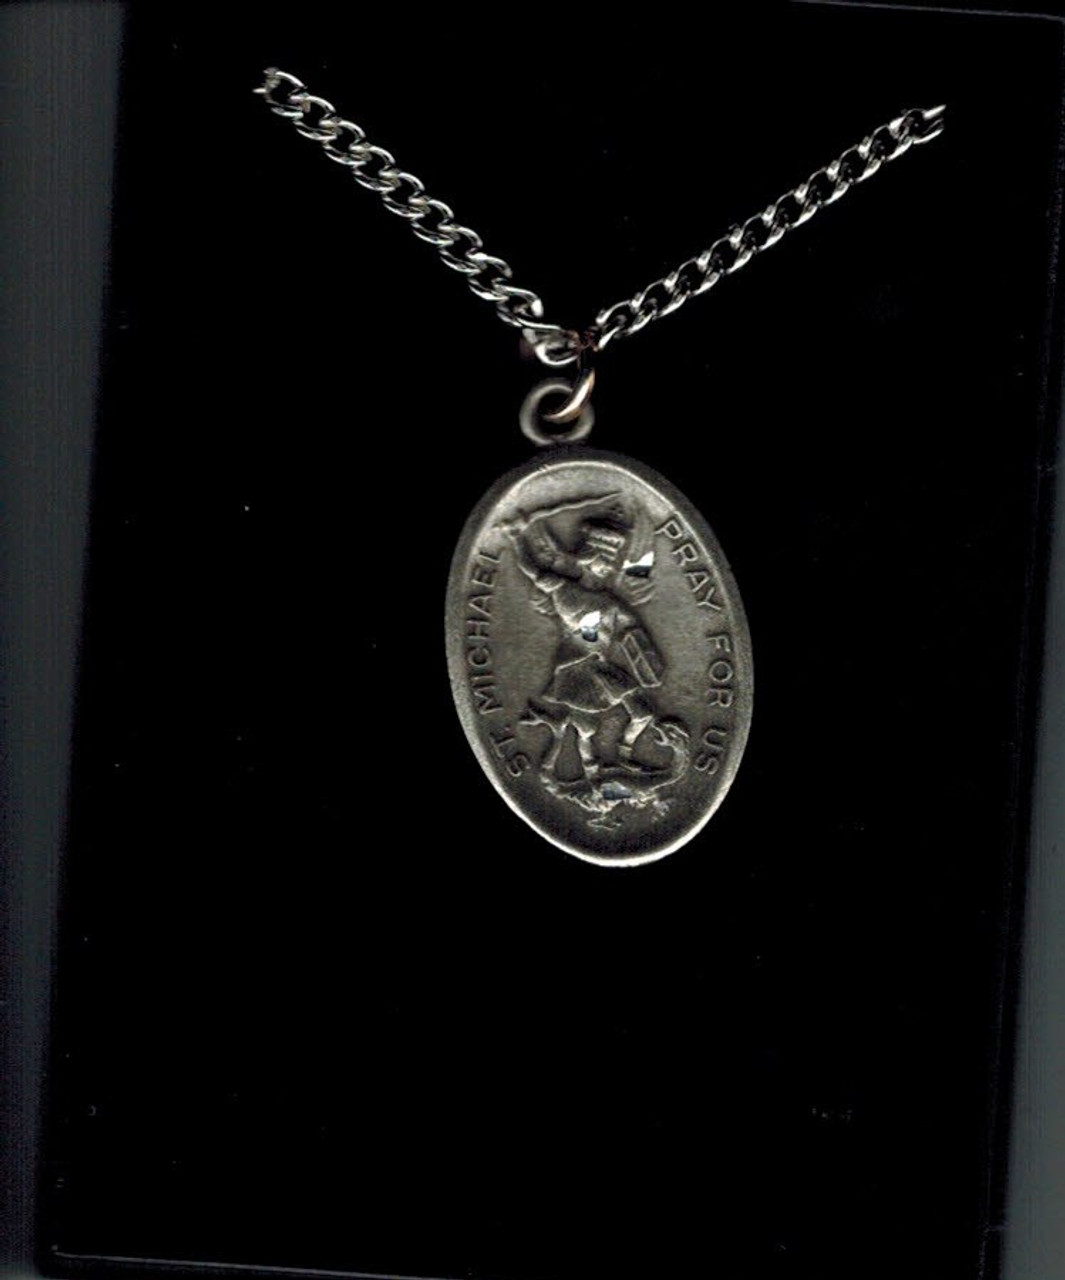 St. Michael / Guardian Angel Pewter Pendant on Chain